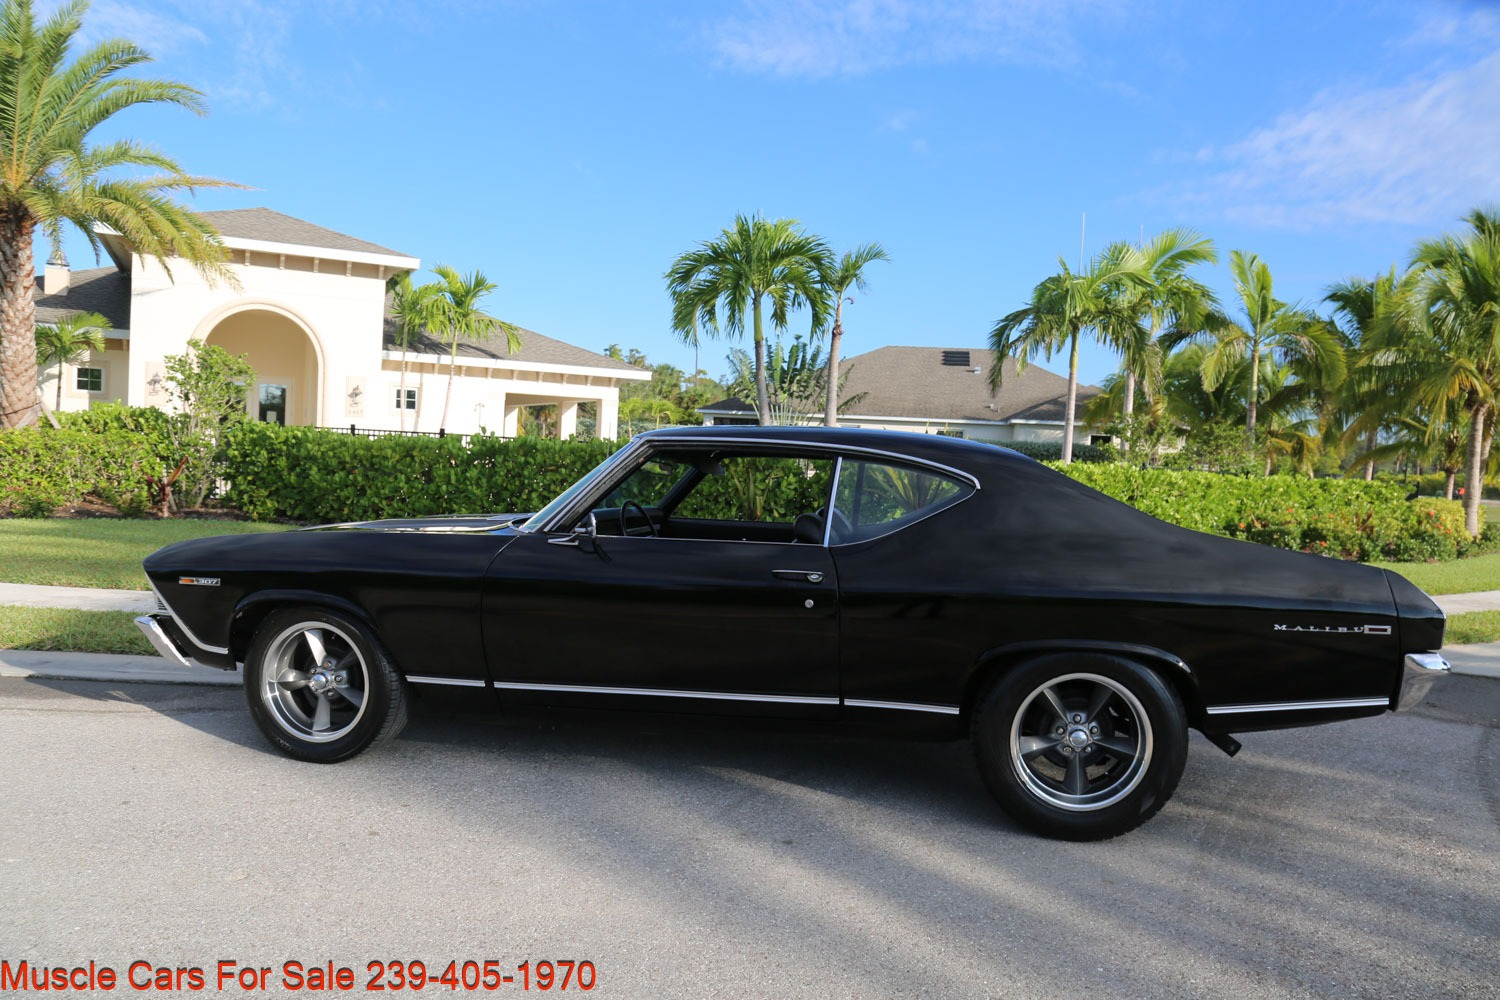 Used 1969 Chevrolet Chevelle Malibu 350 4 Speed for sale Sold at Muscle Cars for Sale Inc. in Fort Myers FL 33912 4